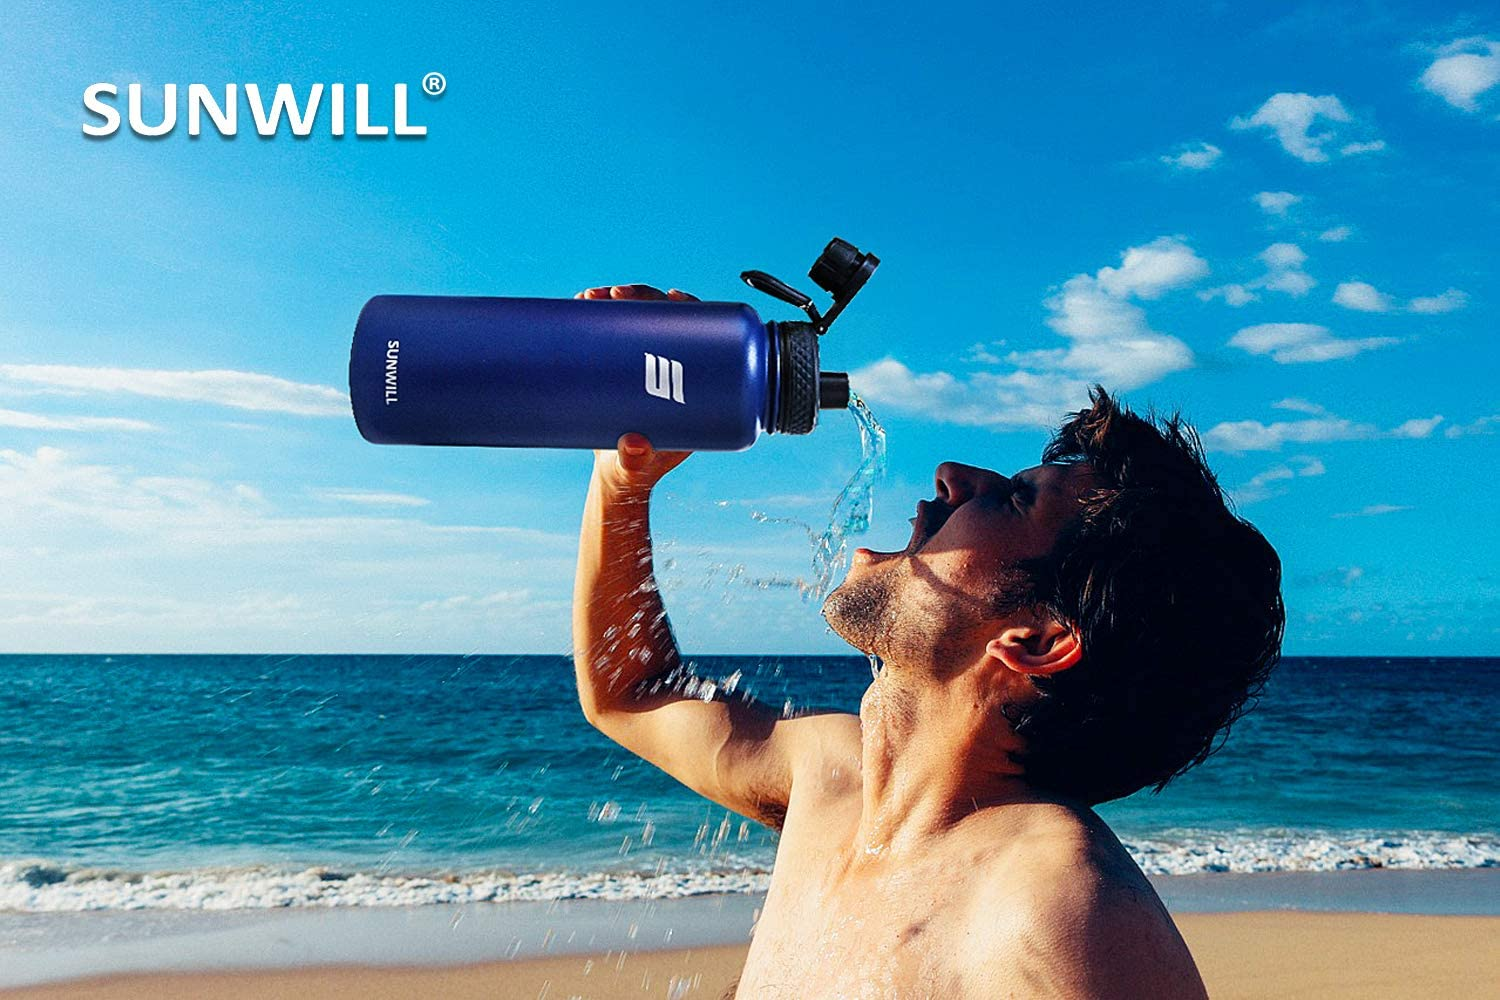 SUNWILL Water Bottle with Straw 40oz Insulated Reusable Stainless Steel Sports Bottle Wide Mouth with Leak Proof Lid Powder Coated Black Large Metal Flask